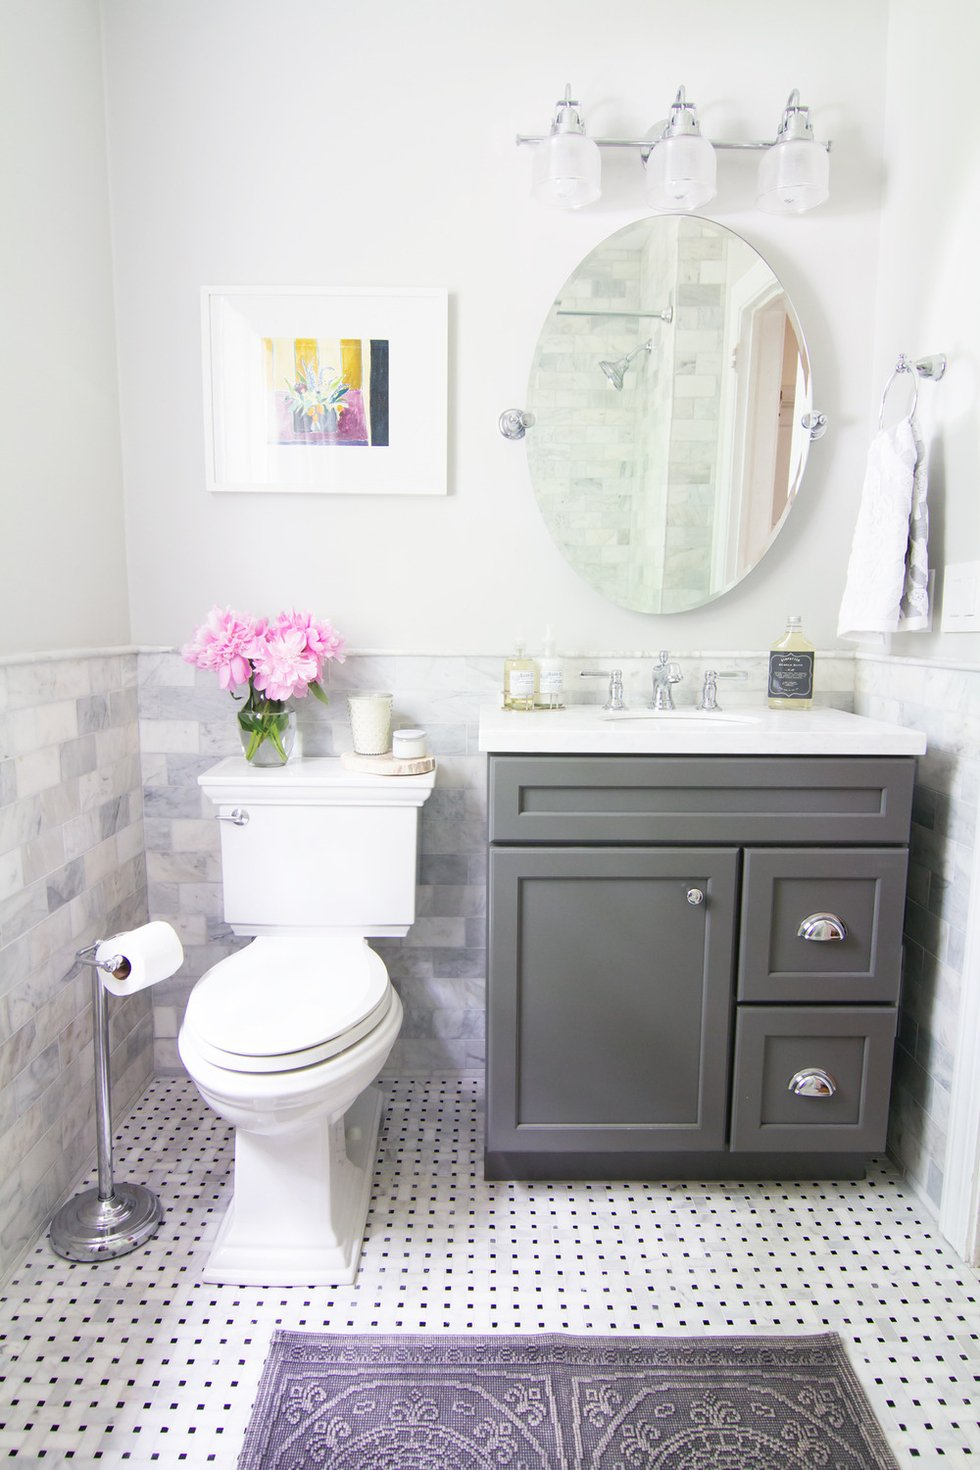 Attractive design bathroom 30 of the best small and functional bathroom design ideas ktnaibo